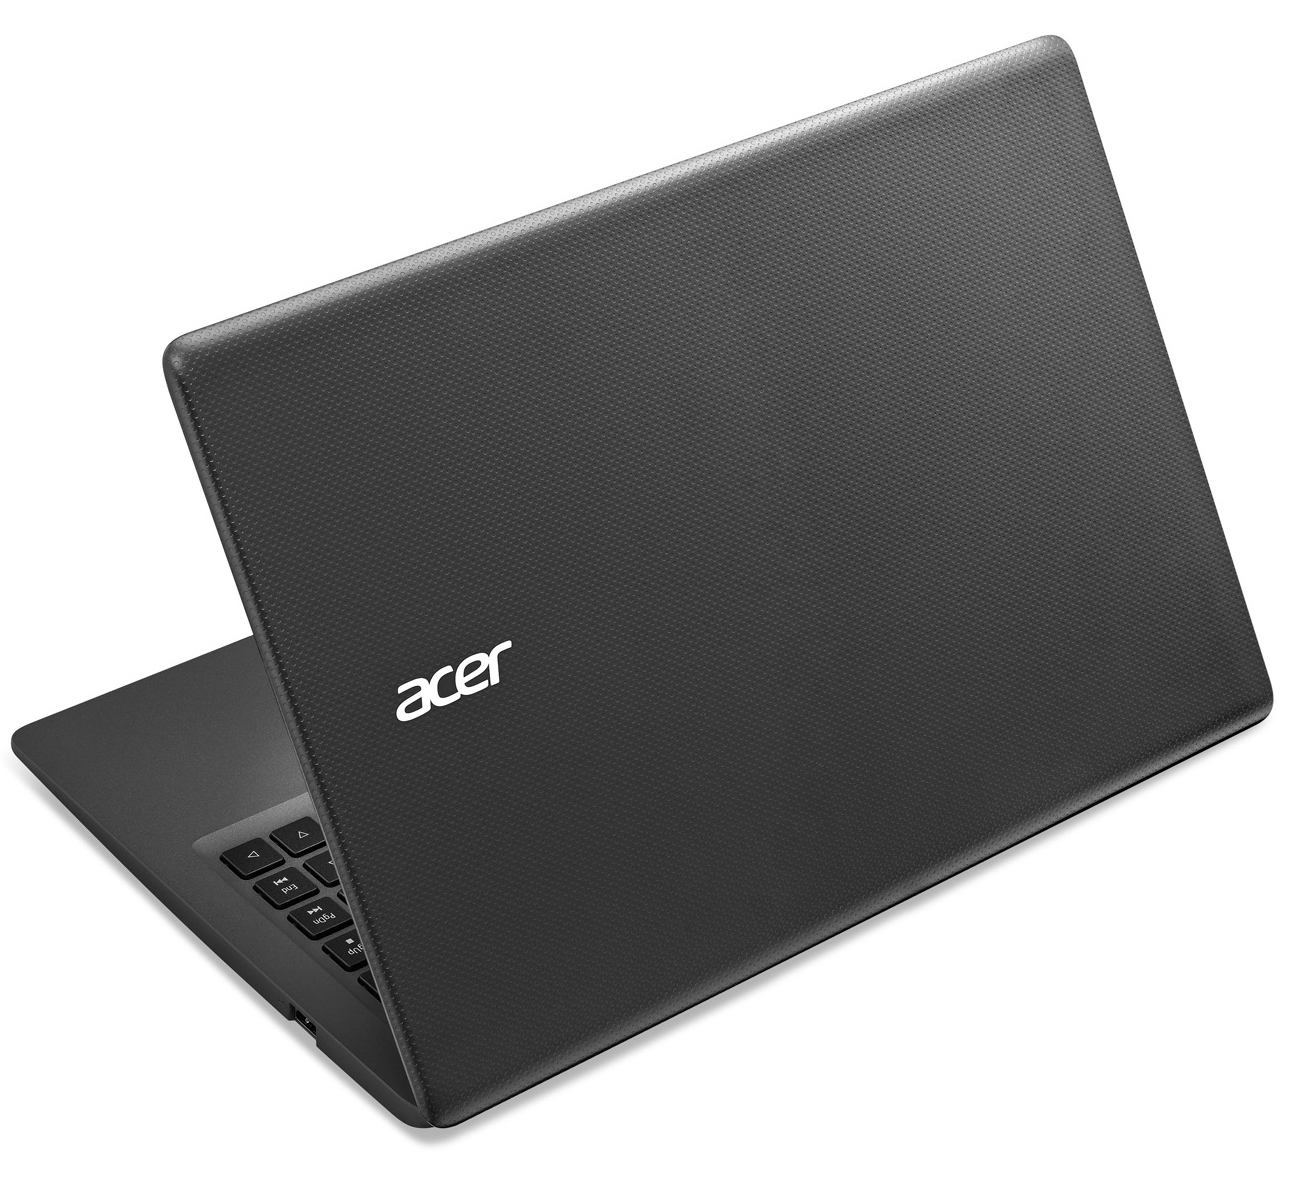 ACER ASPIRE ONE CLOUDBOOK 14 AO1-431 WINDOWS VISTA DRIVER